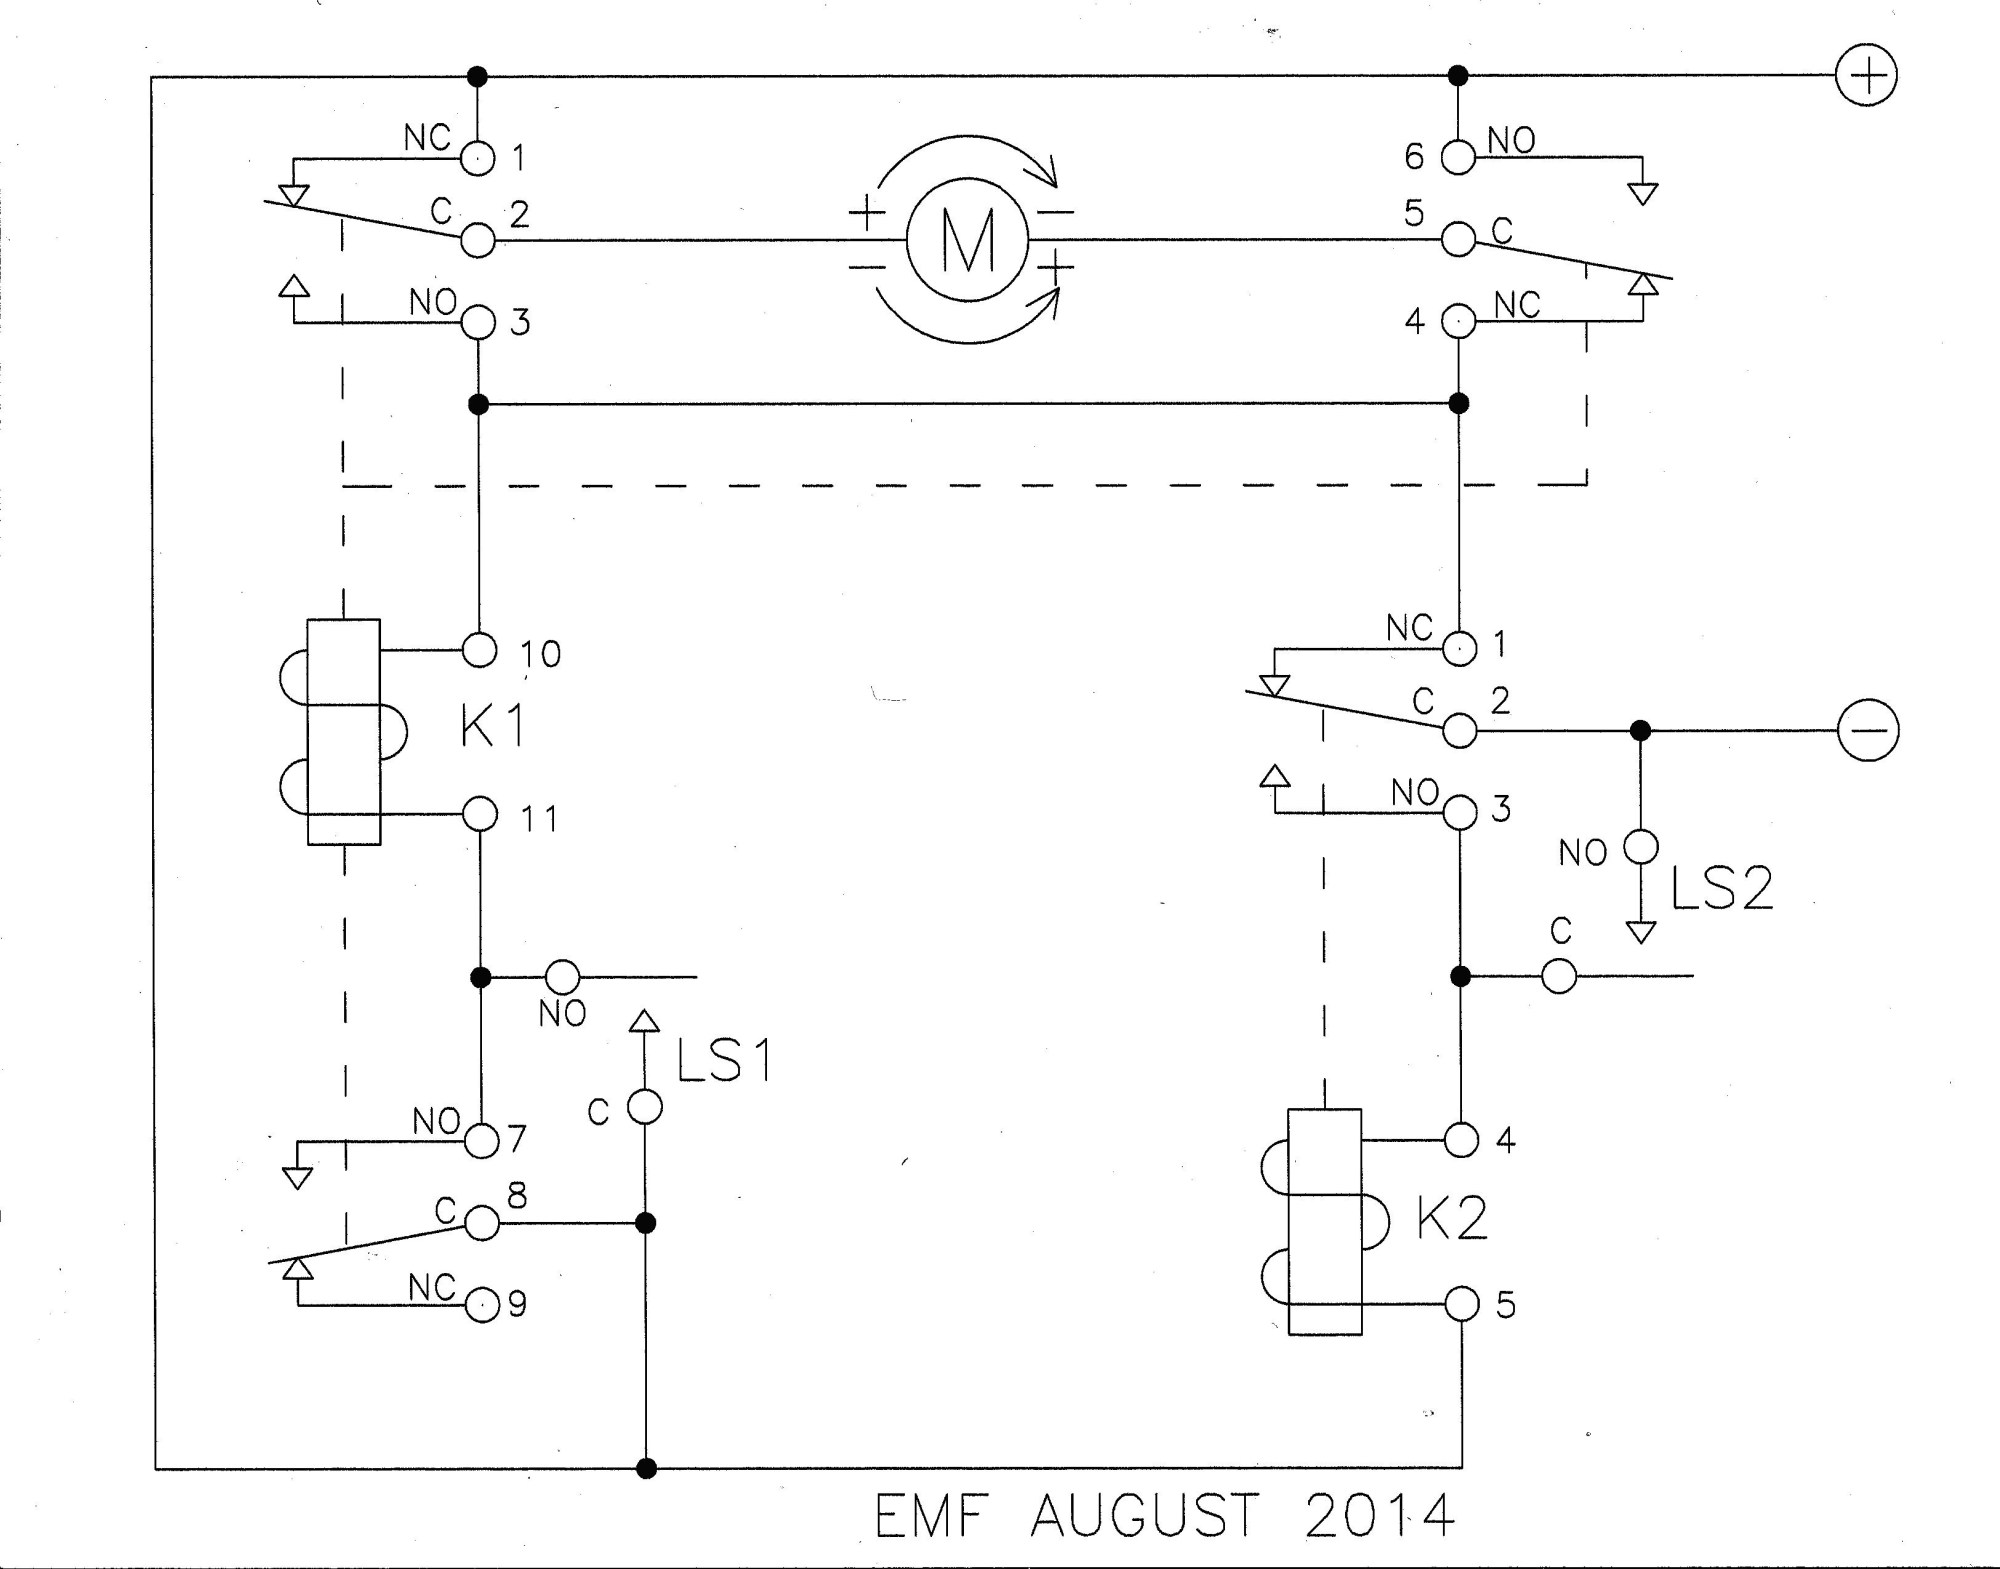 hight resolution of ooma wiring diagram 5 prong ignition switch wiring diagram fresh pin relay beautiful diagrams 24v